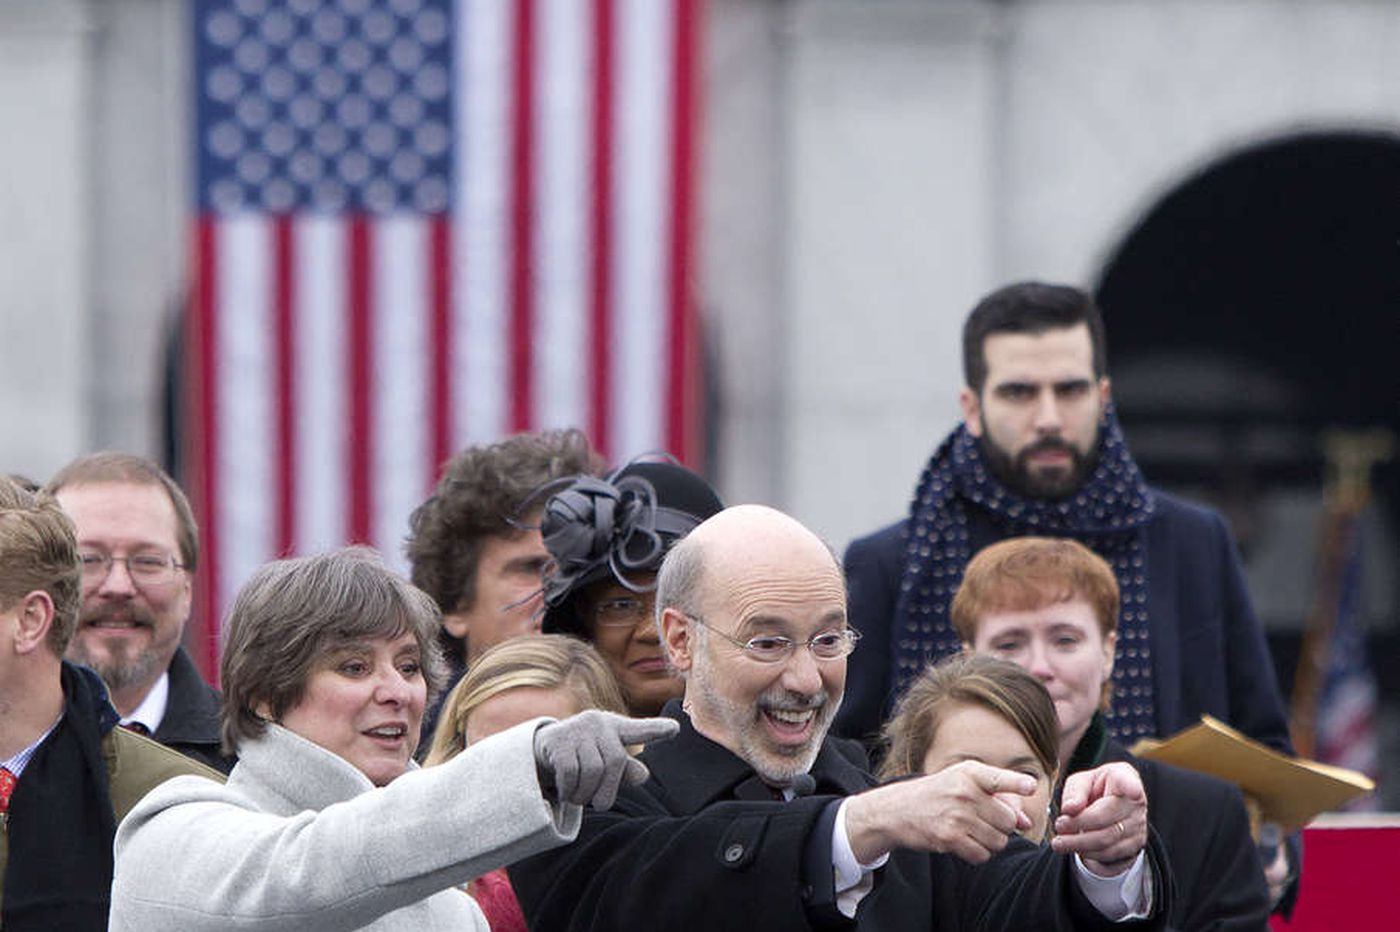 Gov. Tom Wolf's inauguration price tag: $1.7 million and counting